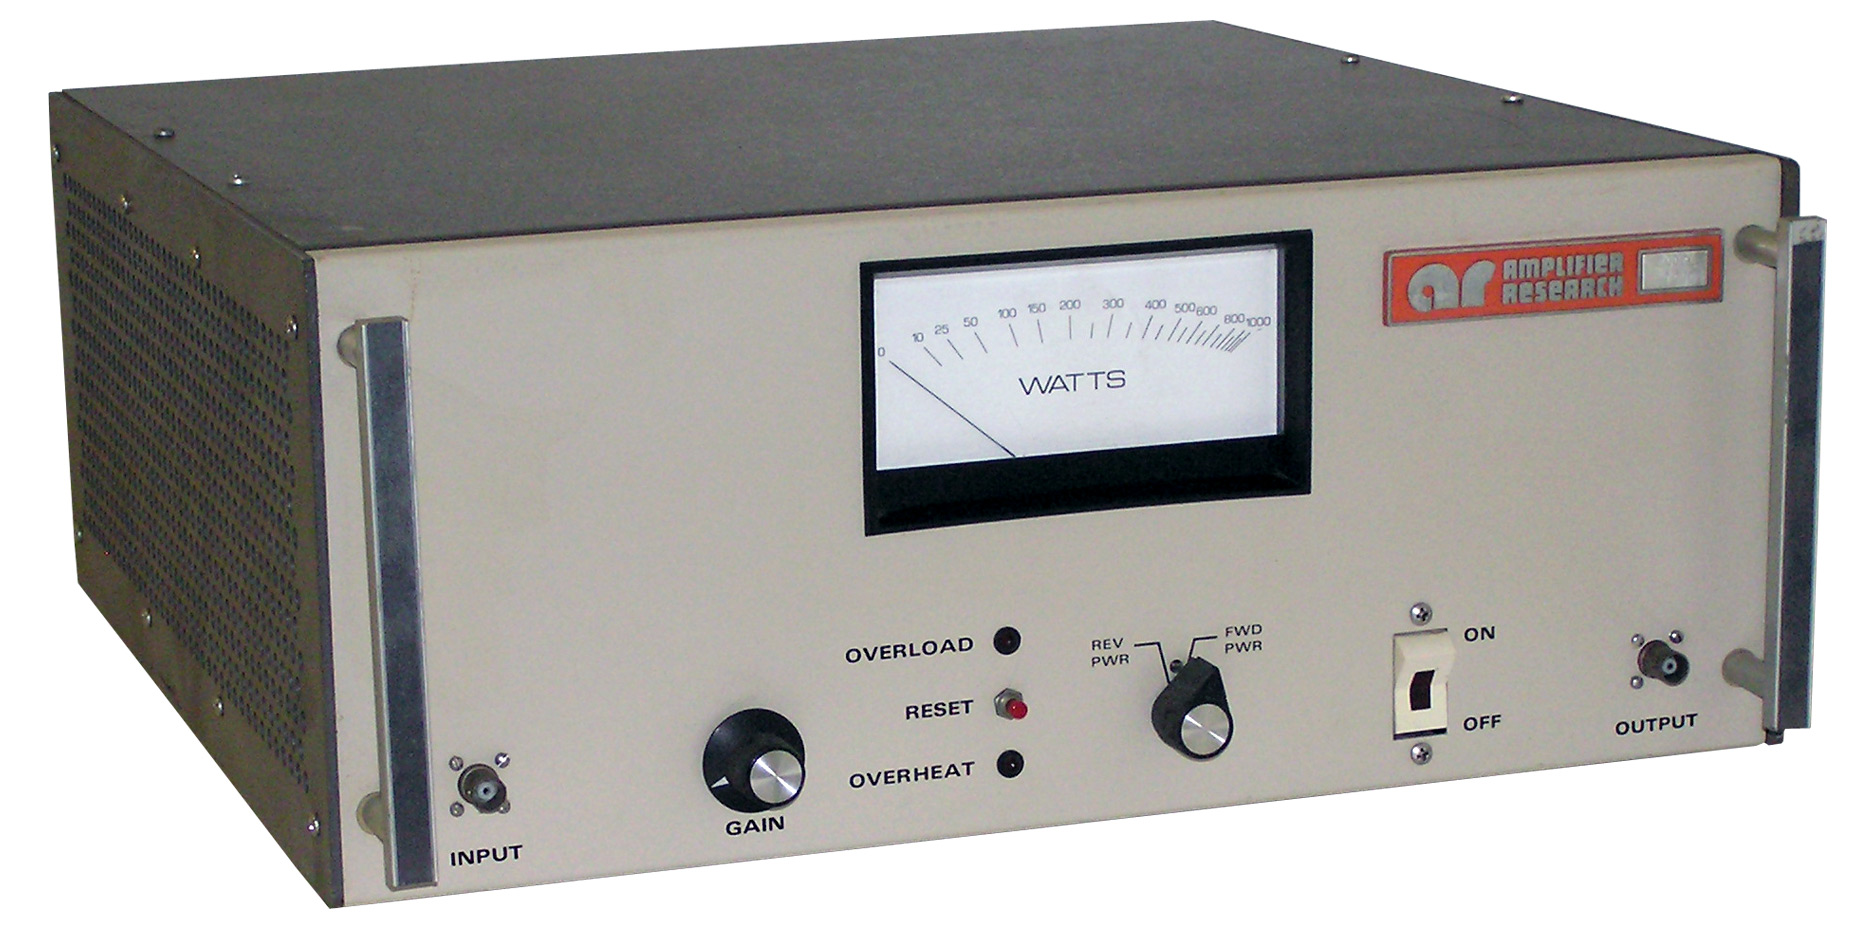 Amplifier Research 700A Ultrasonic Amplifier 10 kHz - 250 kHz